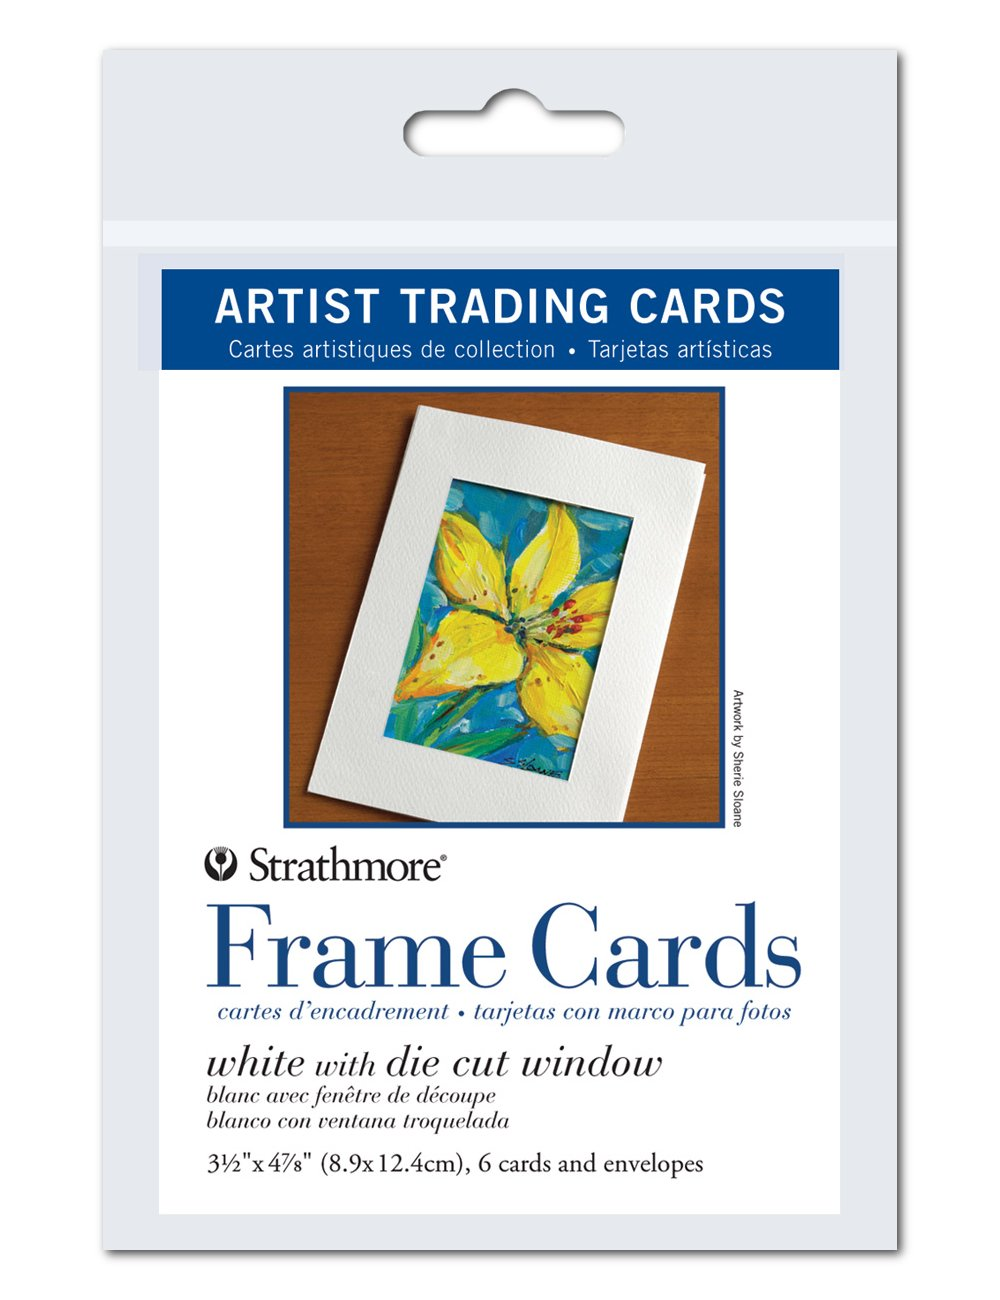 Strathmore Artist Trading Card Frames, White Die-Cut Window, 3.5 X 4.875 inches, Package of 6 (105-912) STRATHMORE PAPER 4336880422